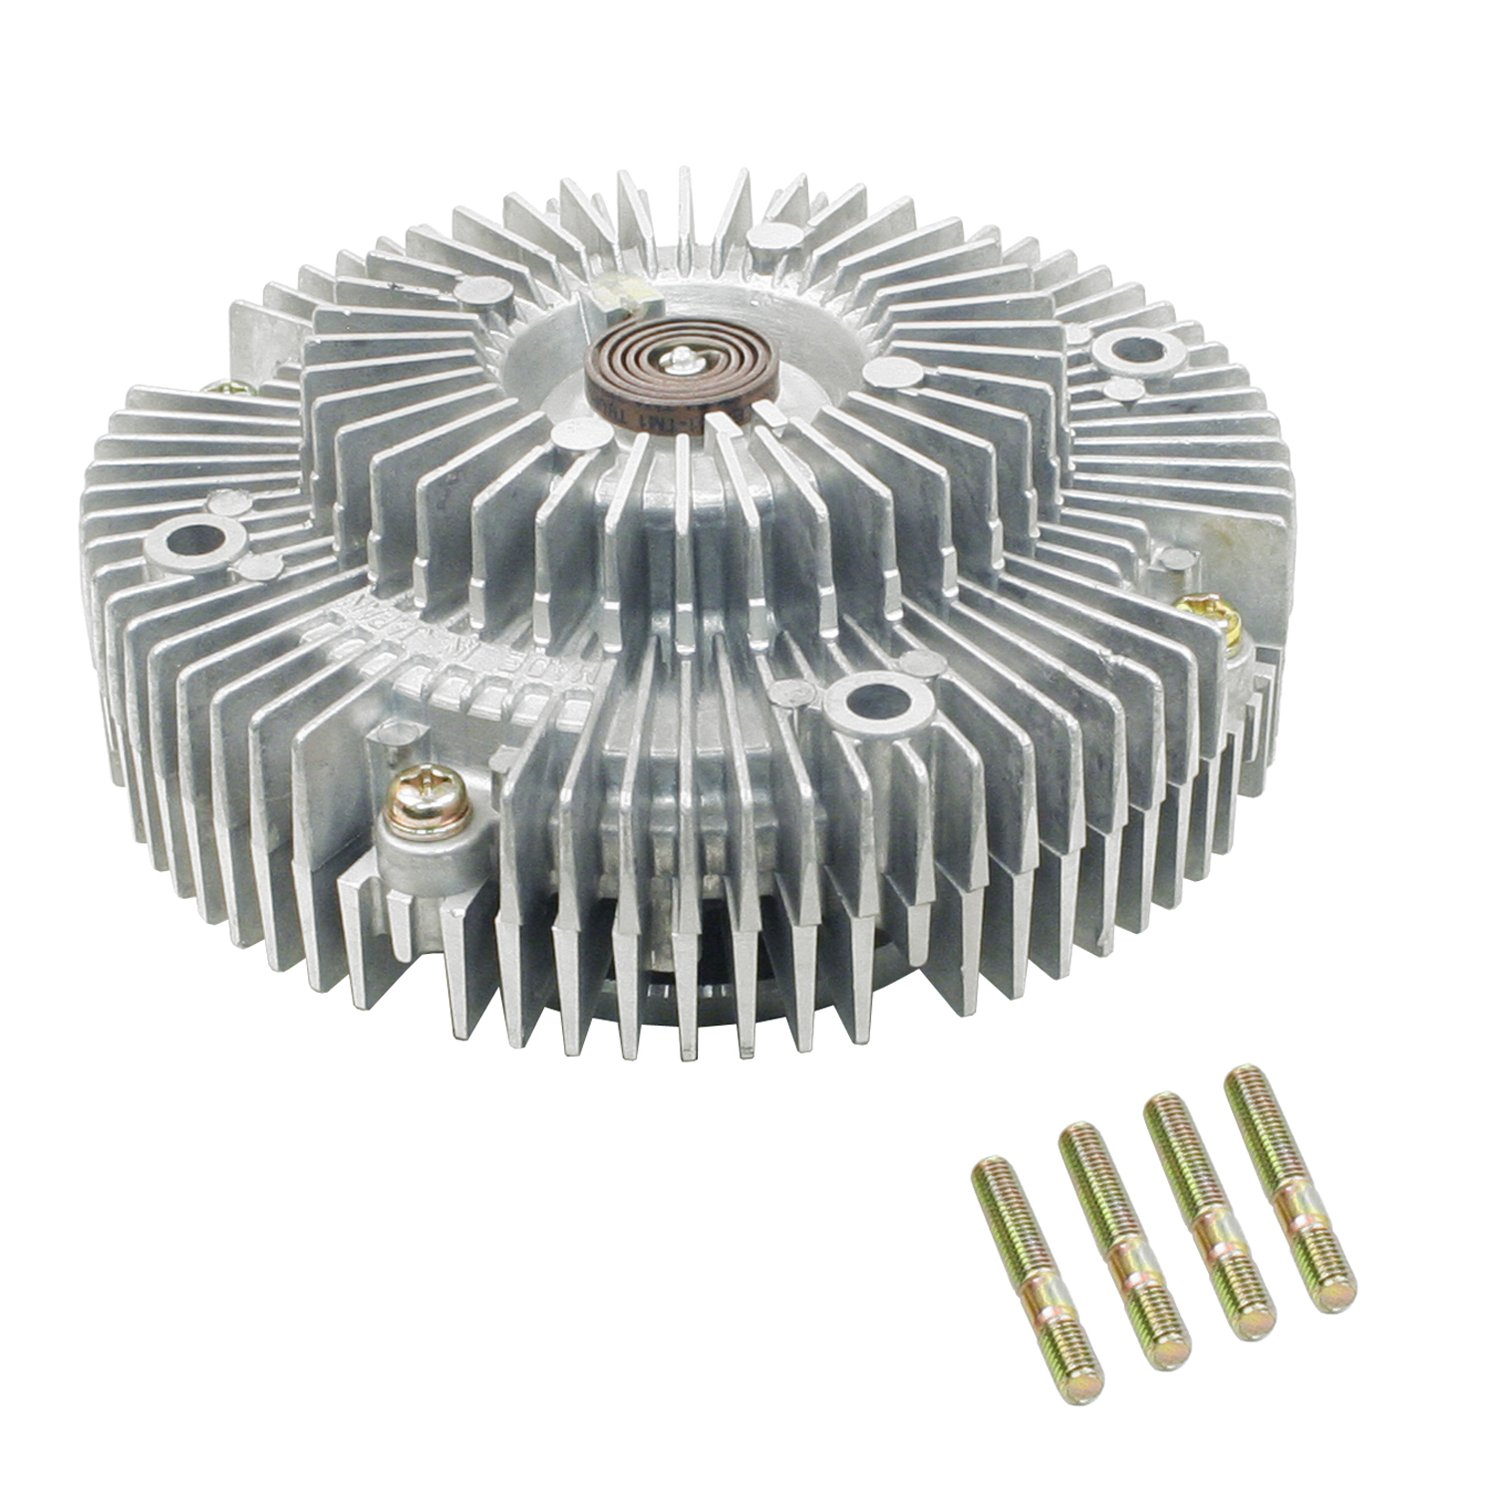 Beck Arnley 130-0142 Fan Clutch Unit